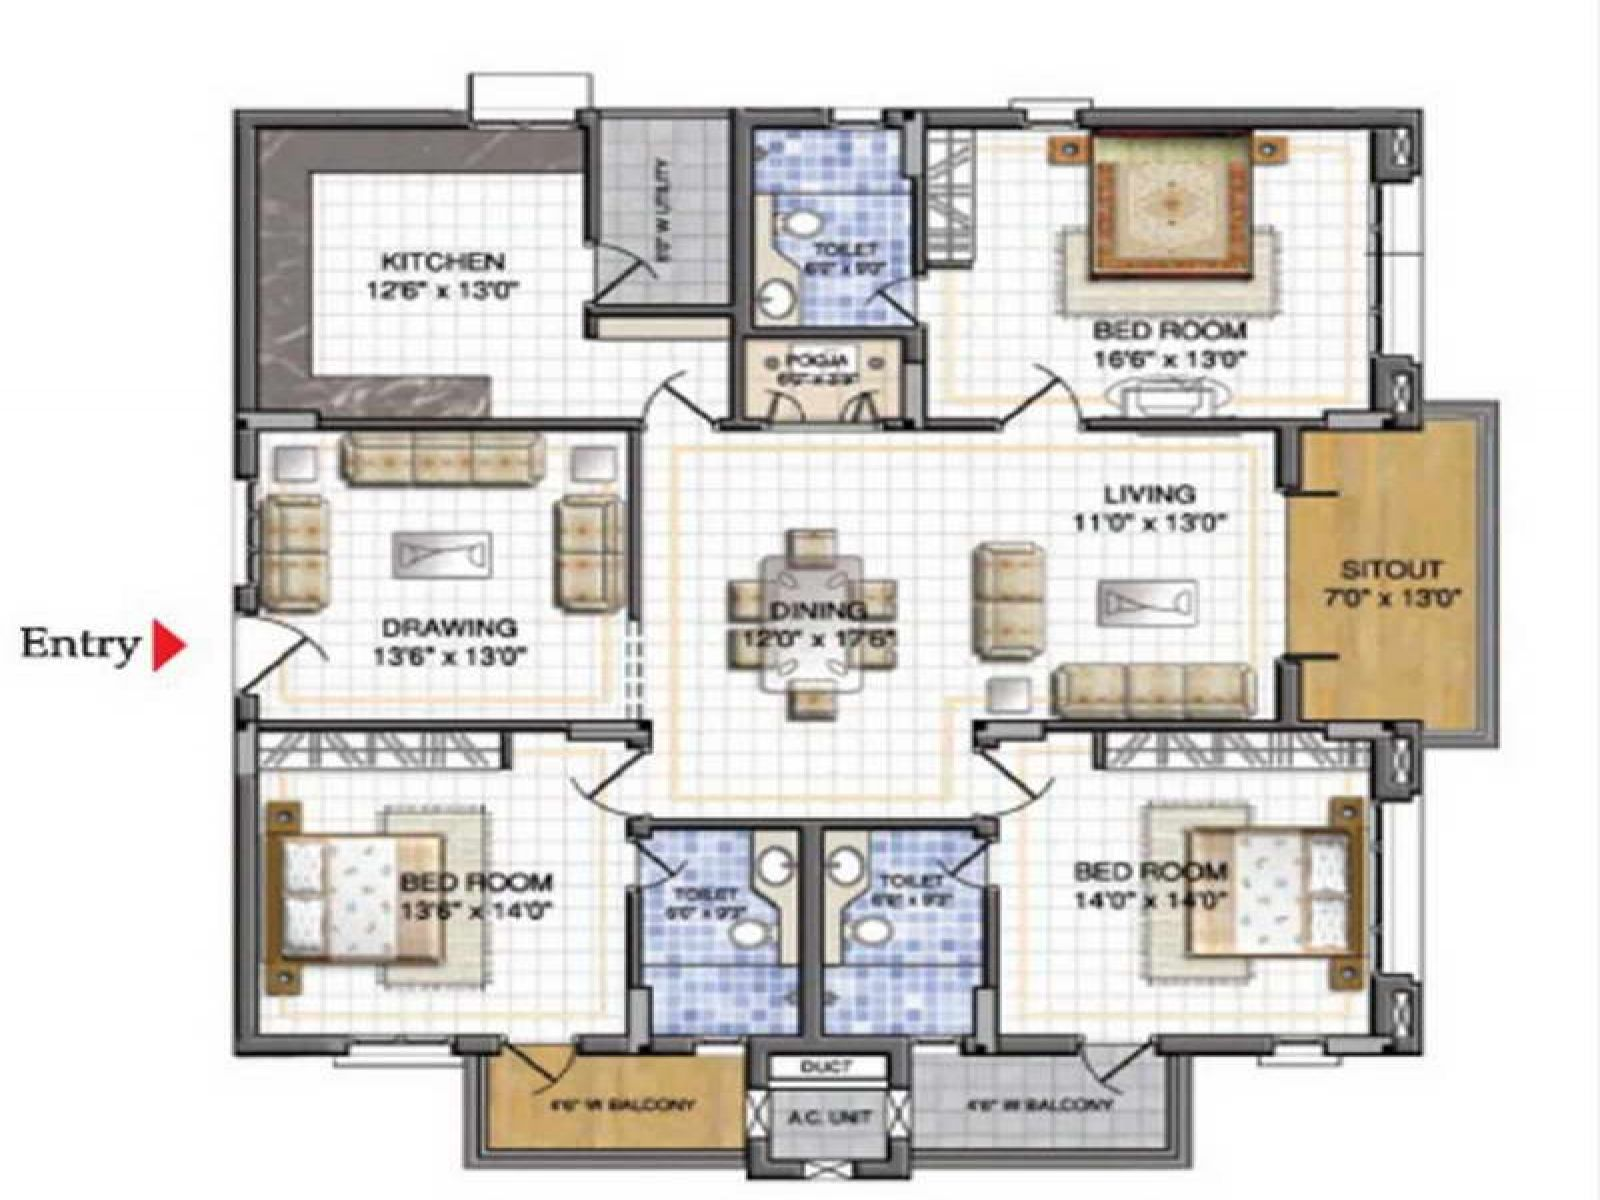 Home Plan Design Online Plans Glamorous Plan Design Software Windows Floor Free Online Terms Copyright . Decorating Inspiration